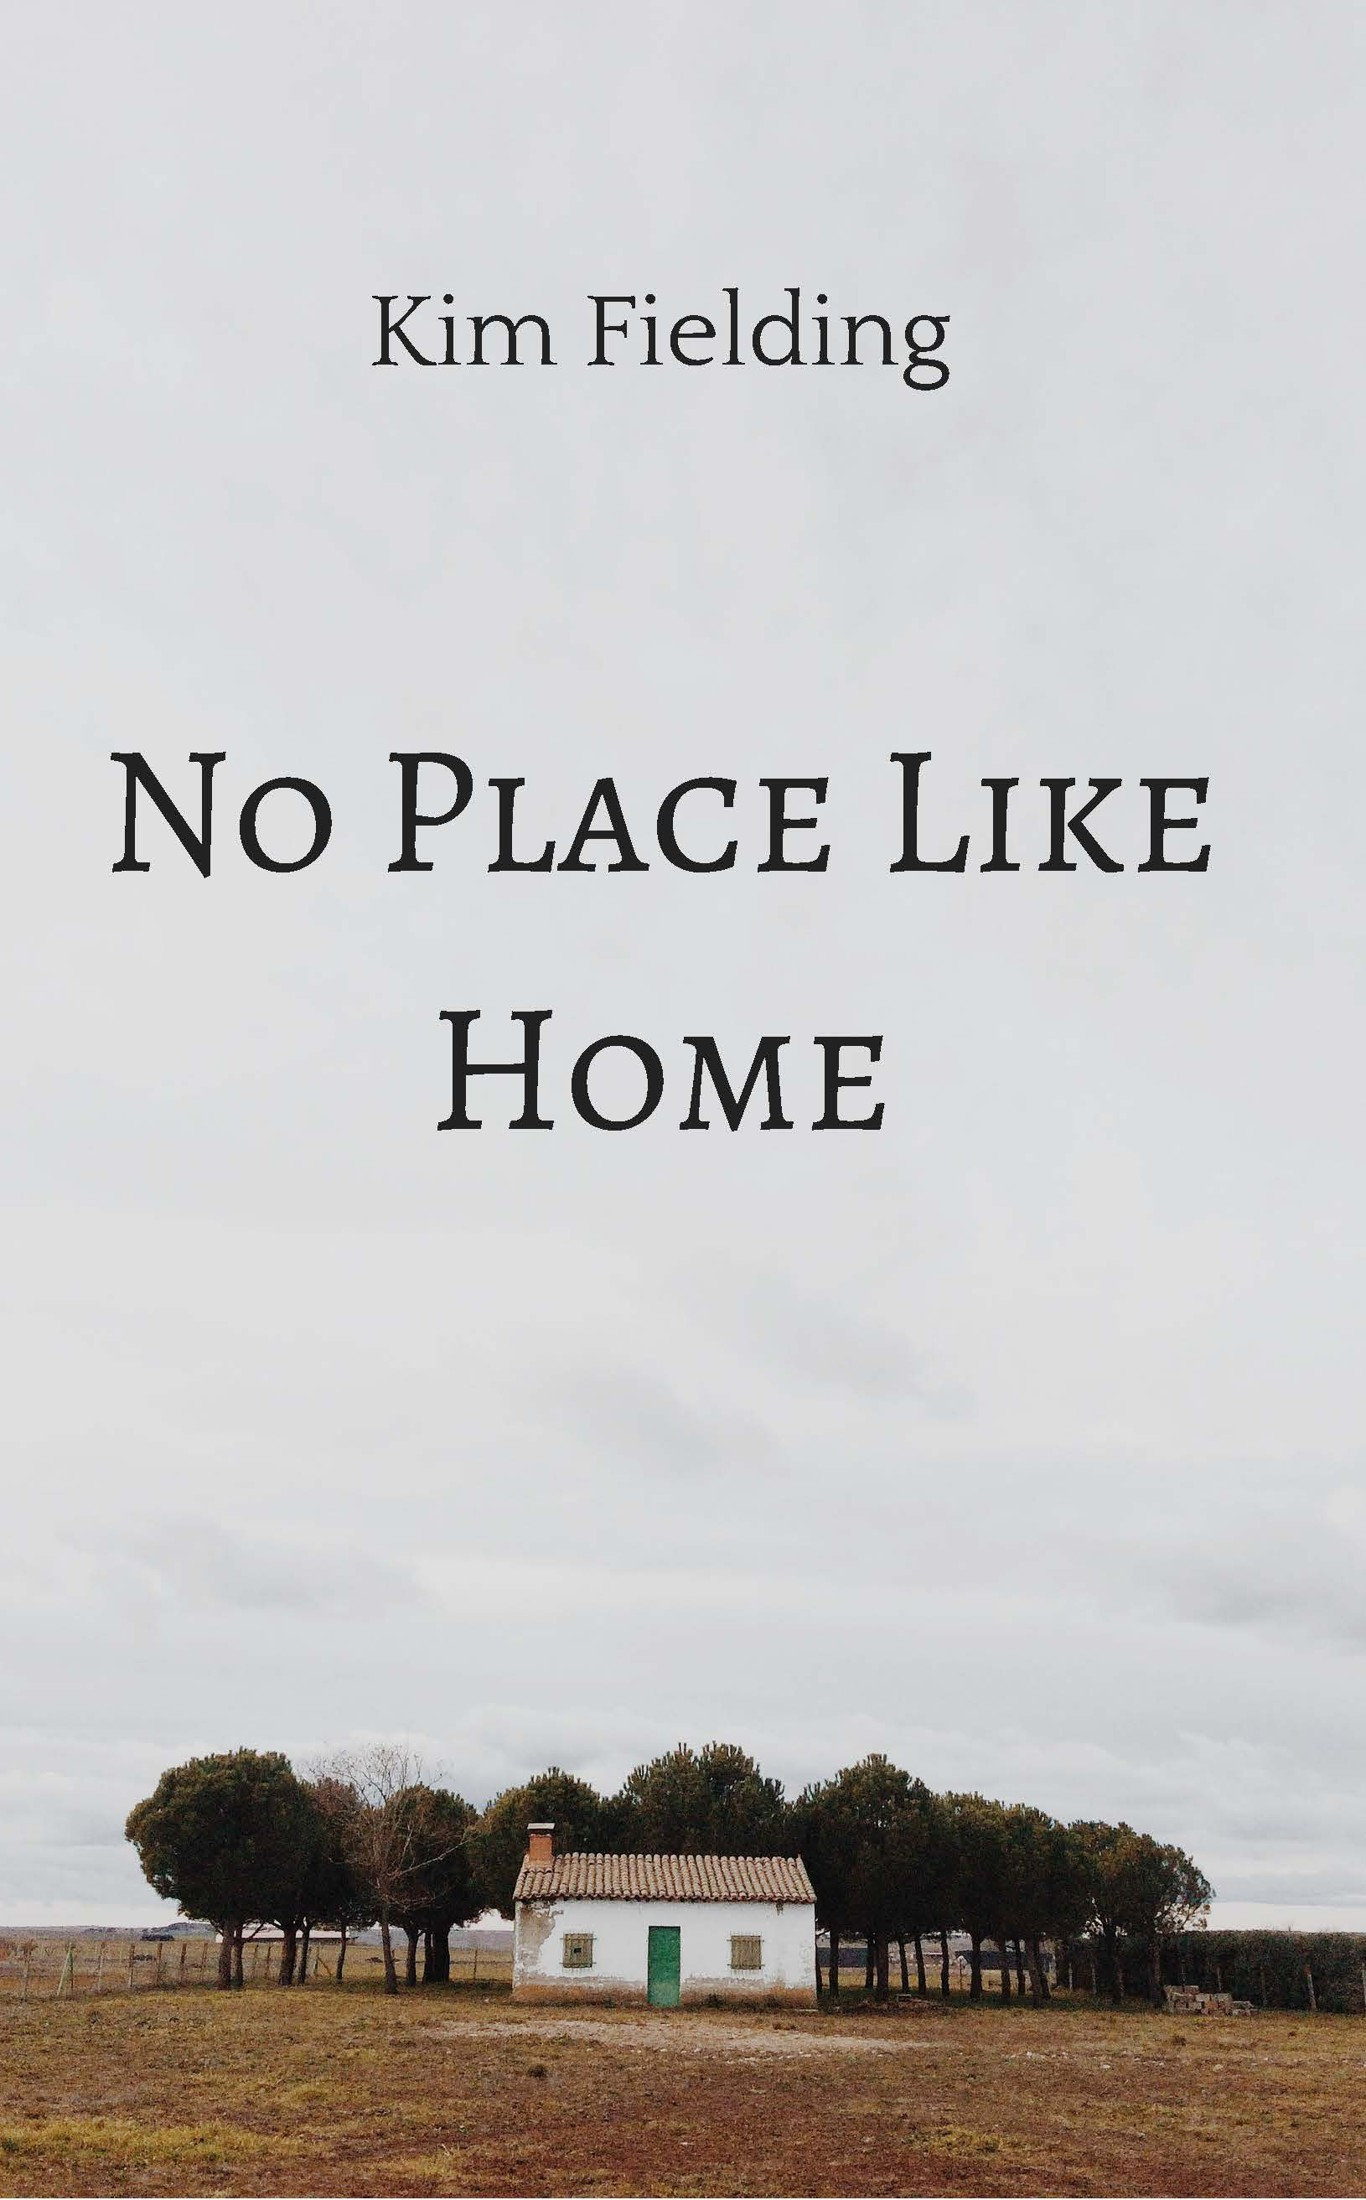 a place like home Get directions, reviews and information for a place like home in palm bay, fl.